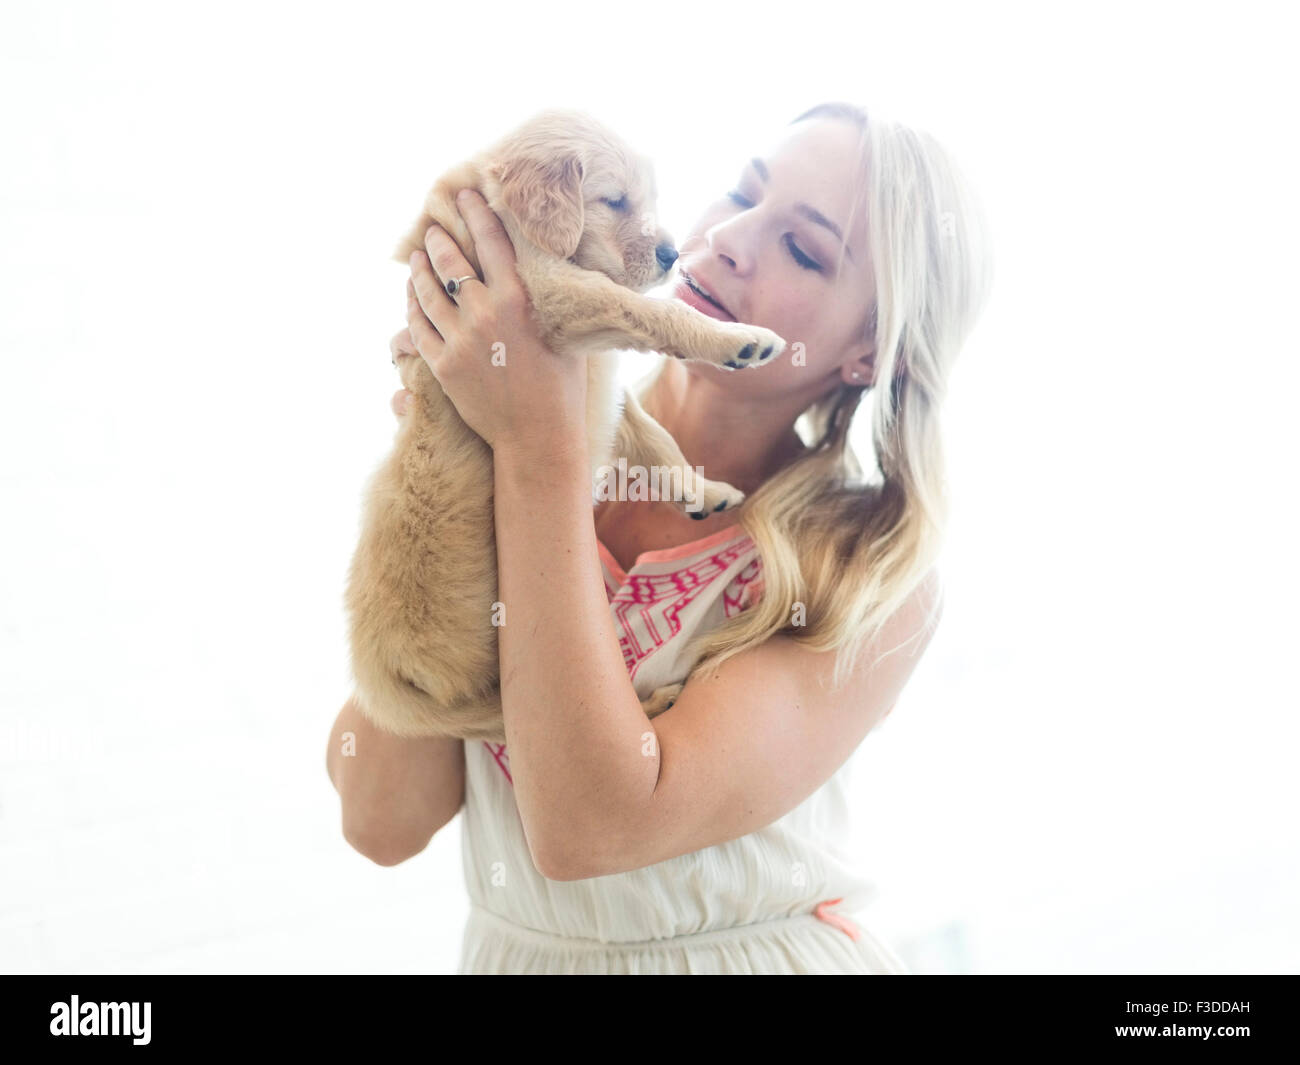 Studio shot of Golden Retriever puppy with owner - Stock Image